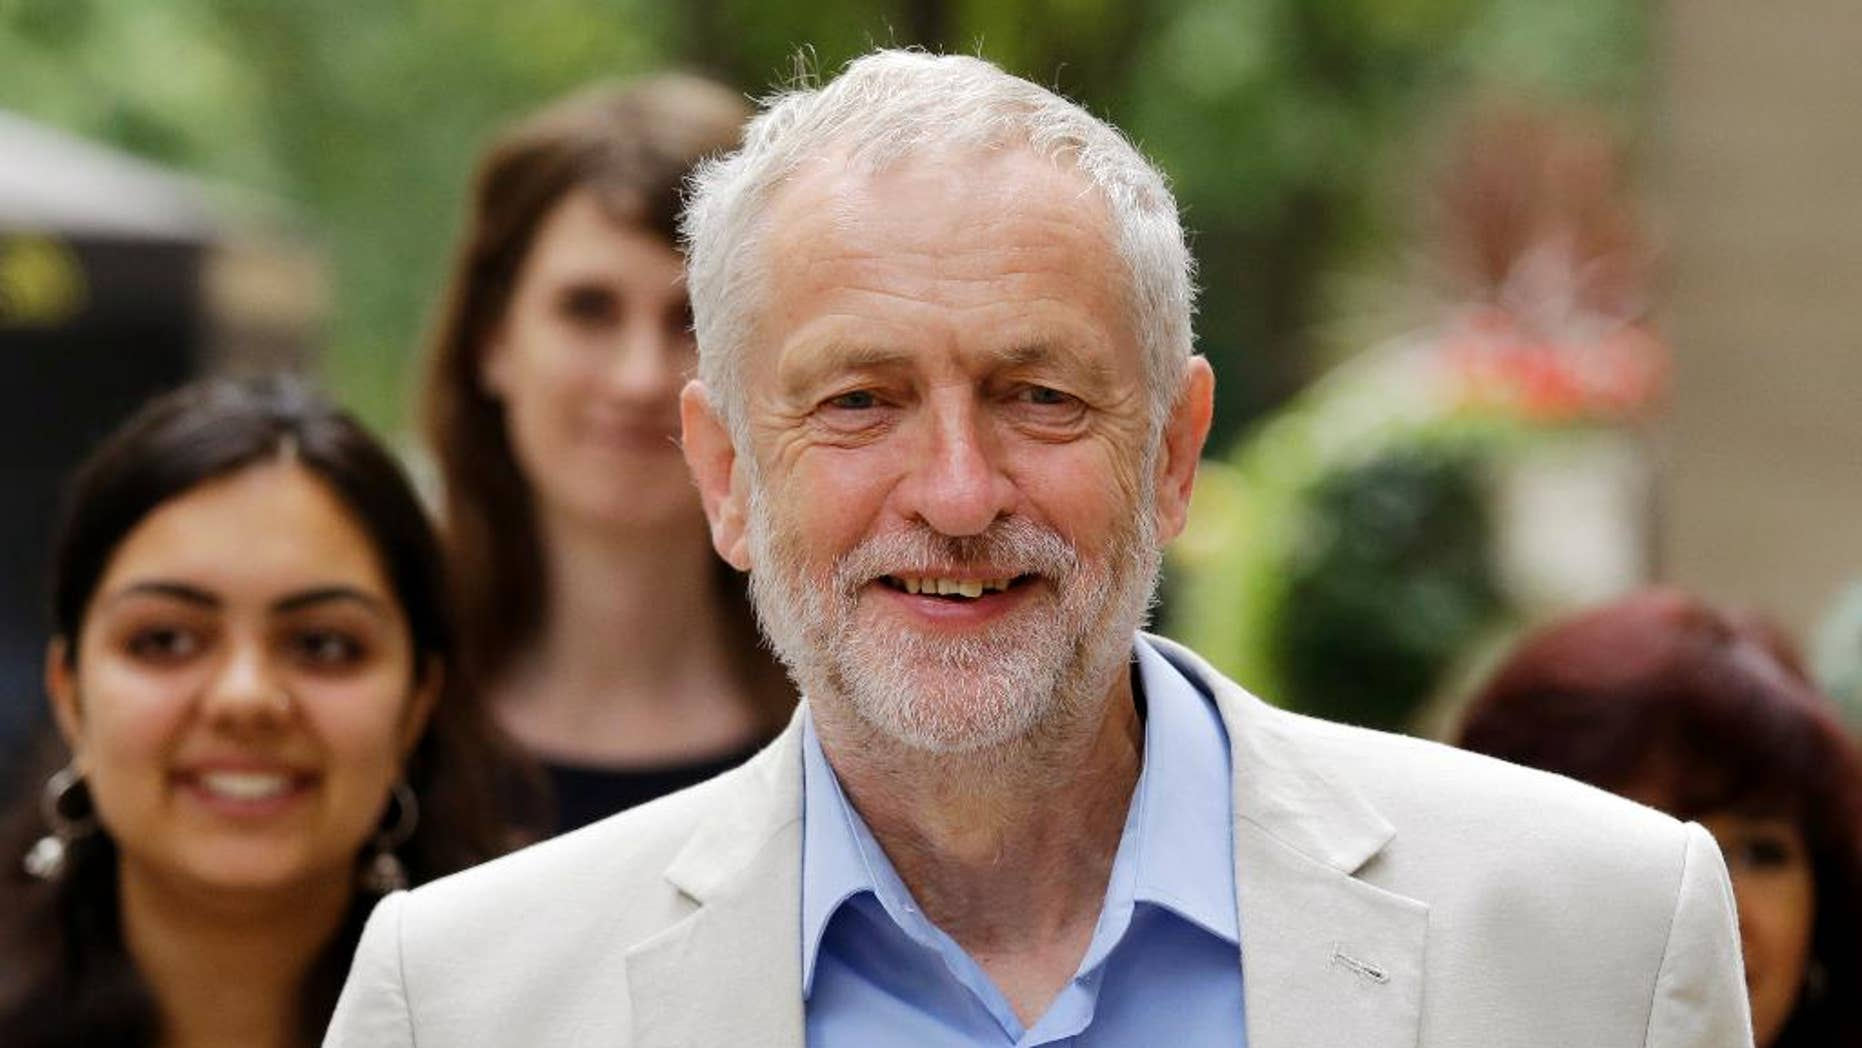 FILE - In this Thursday, July 21, 2016 file photo, British Labour Party leader Jeremy Corbyn walks with supporters as he arrives for a press conference to launch his bid to retain the leadership of the party in London. Britain's High Court on Thurday, July 28 has struck down an attempt to remove the lead of the country's divided Labour opposition from a contest for the party leadership. Labour lawmakers are trying to unseat leader Jeremy Corbyn, a 67-year-old left-winger considered unelectable by the party's more centrist members. (AP Photo/Matt Dunham, file)